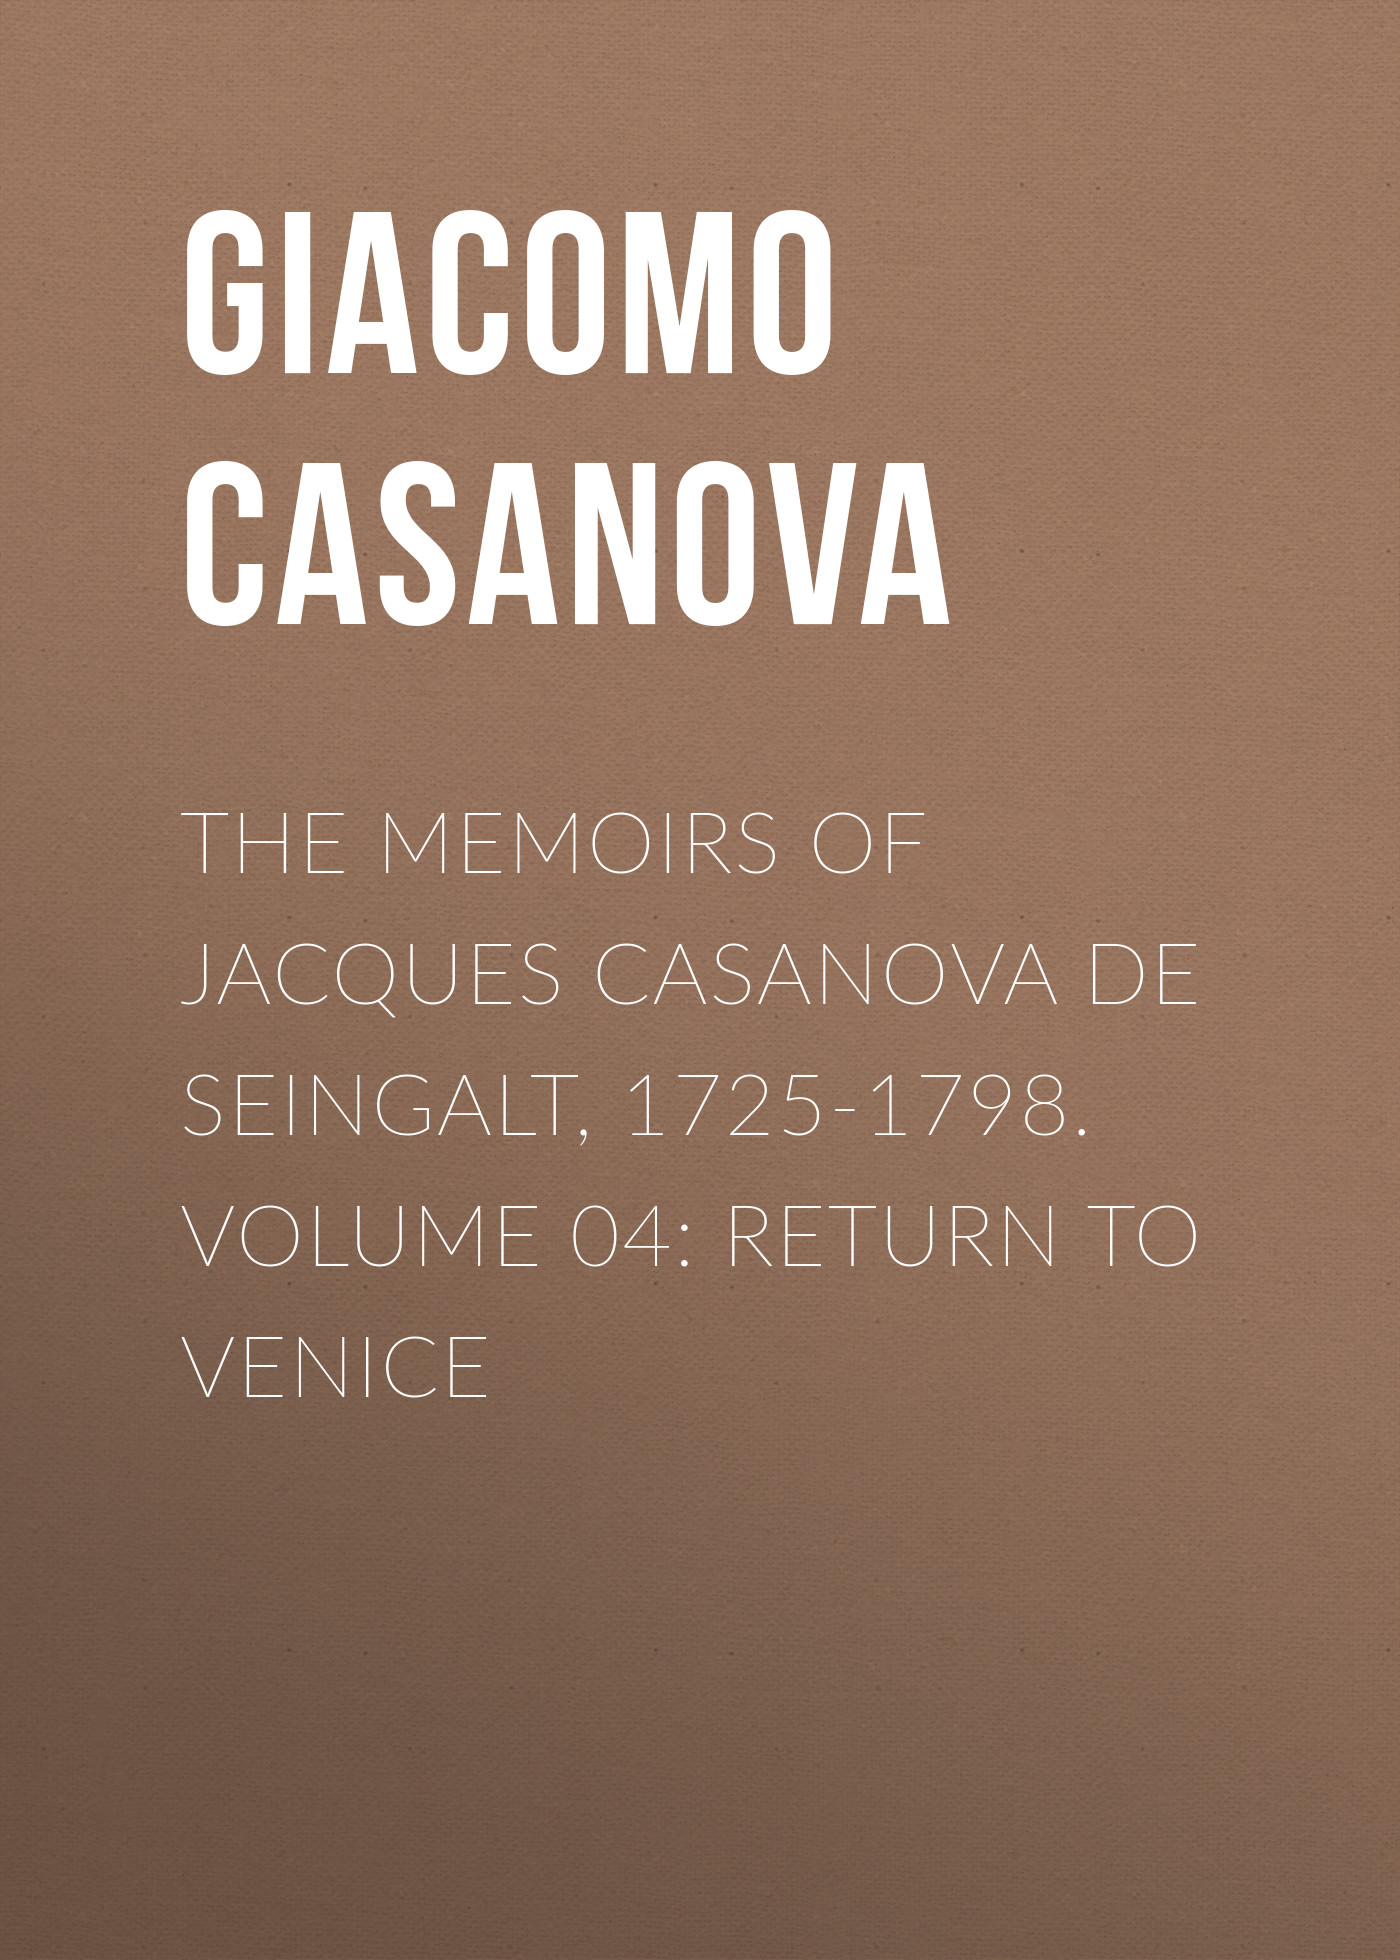 Giacomo Casanova The Memoirs of Jacques Casanova de Seingalt, 1725-1798. Volume 04: Return to Venice giacomo casanova the memoirs of jacques casanova de seingalt 1725 1798 volume 29 florence to trieste